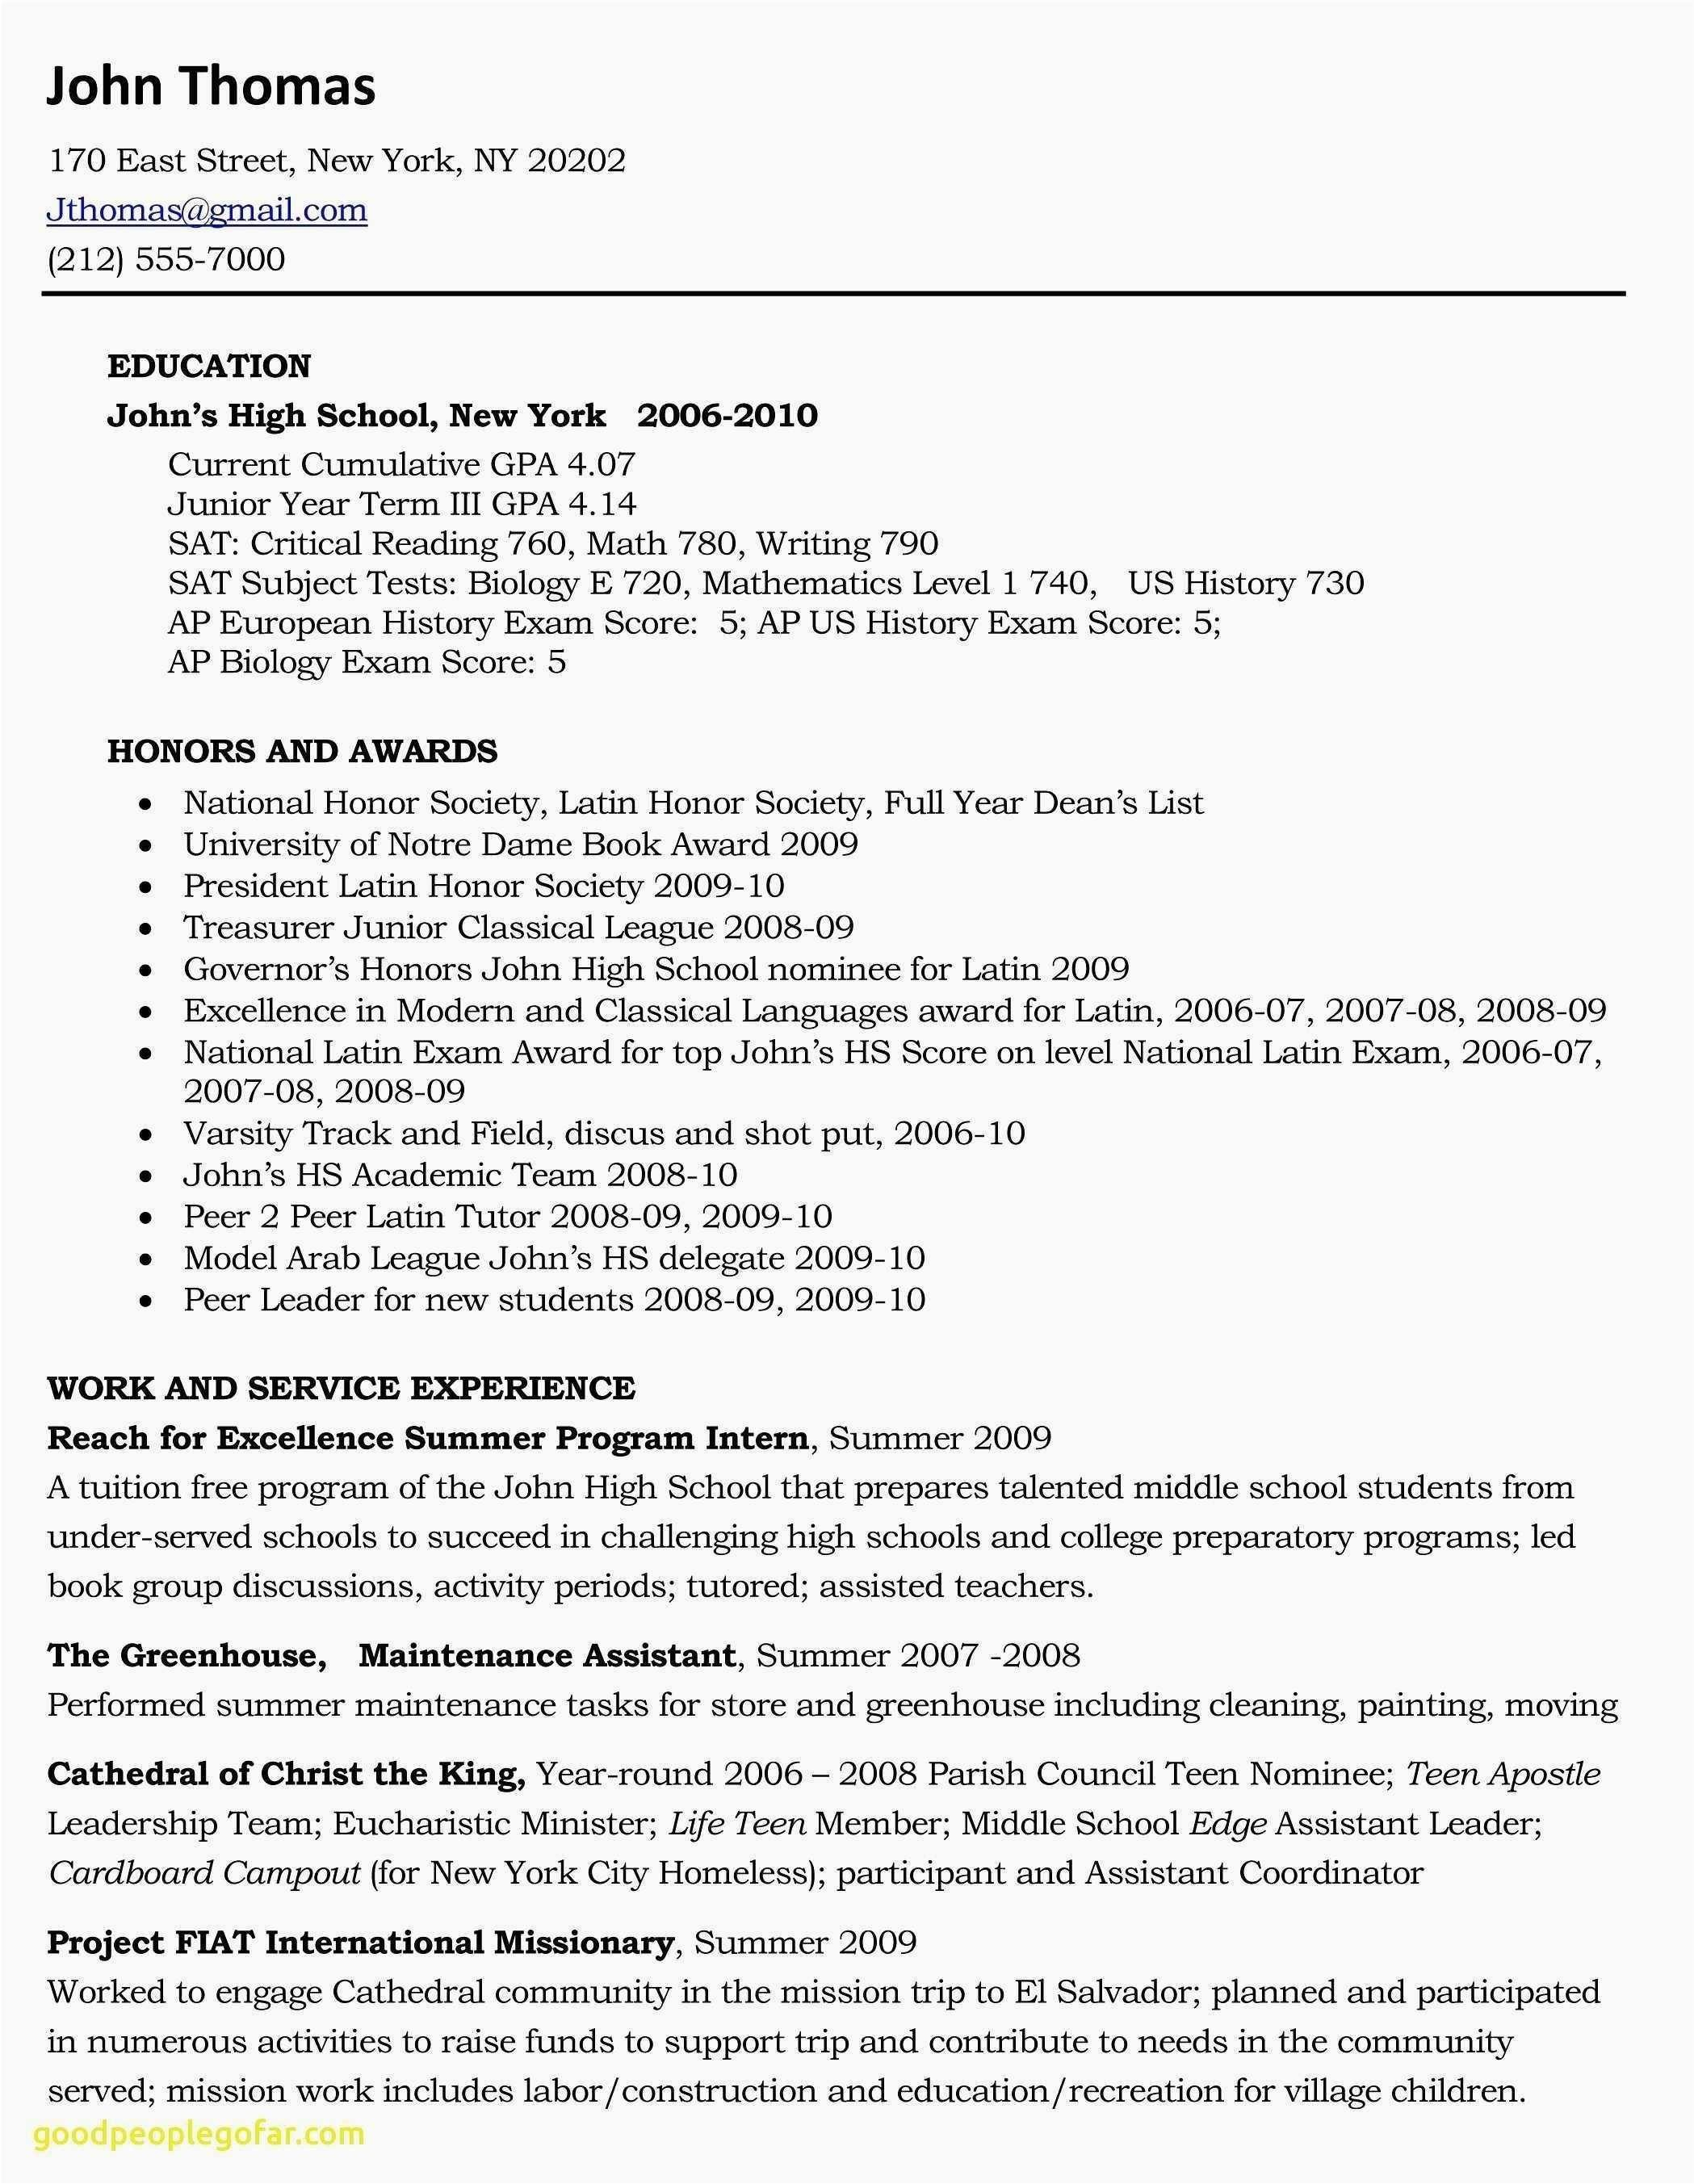 Domestic Cleaner Cv Sample Uk Luxus Resume For Cleaning Business Owner New